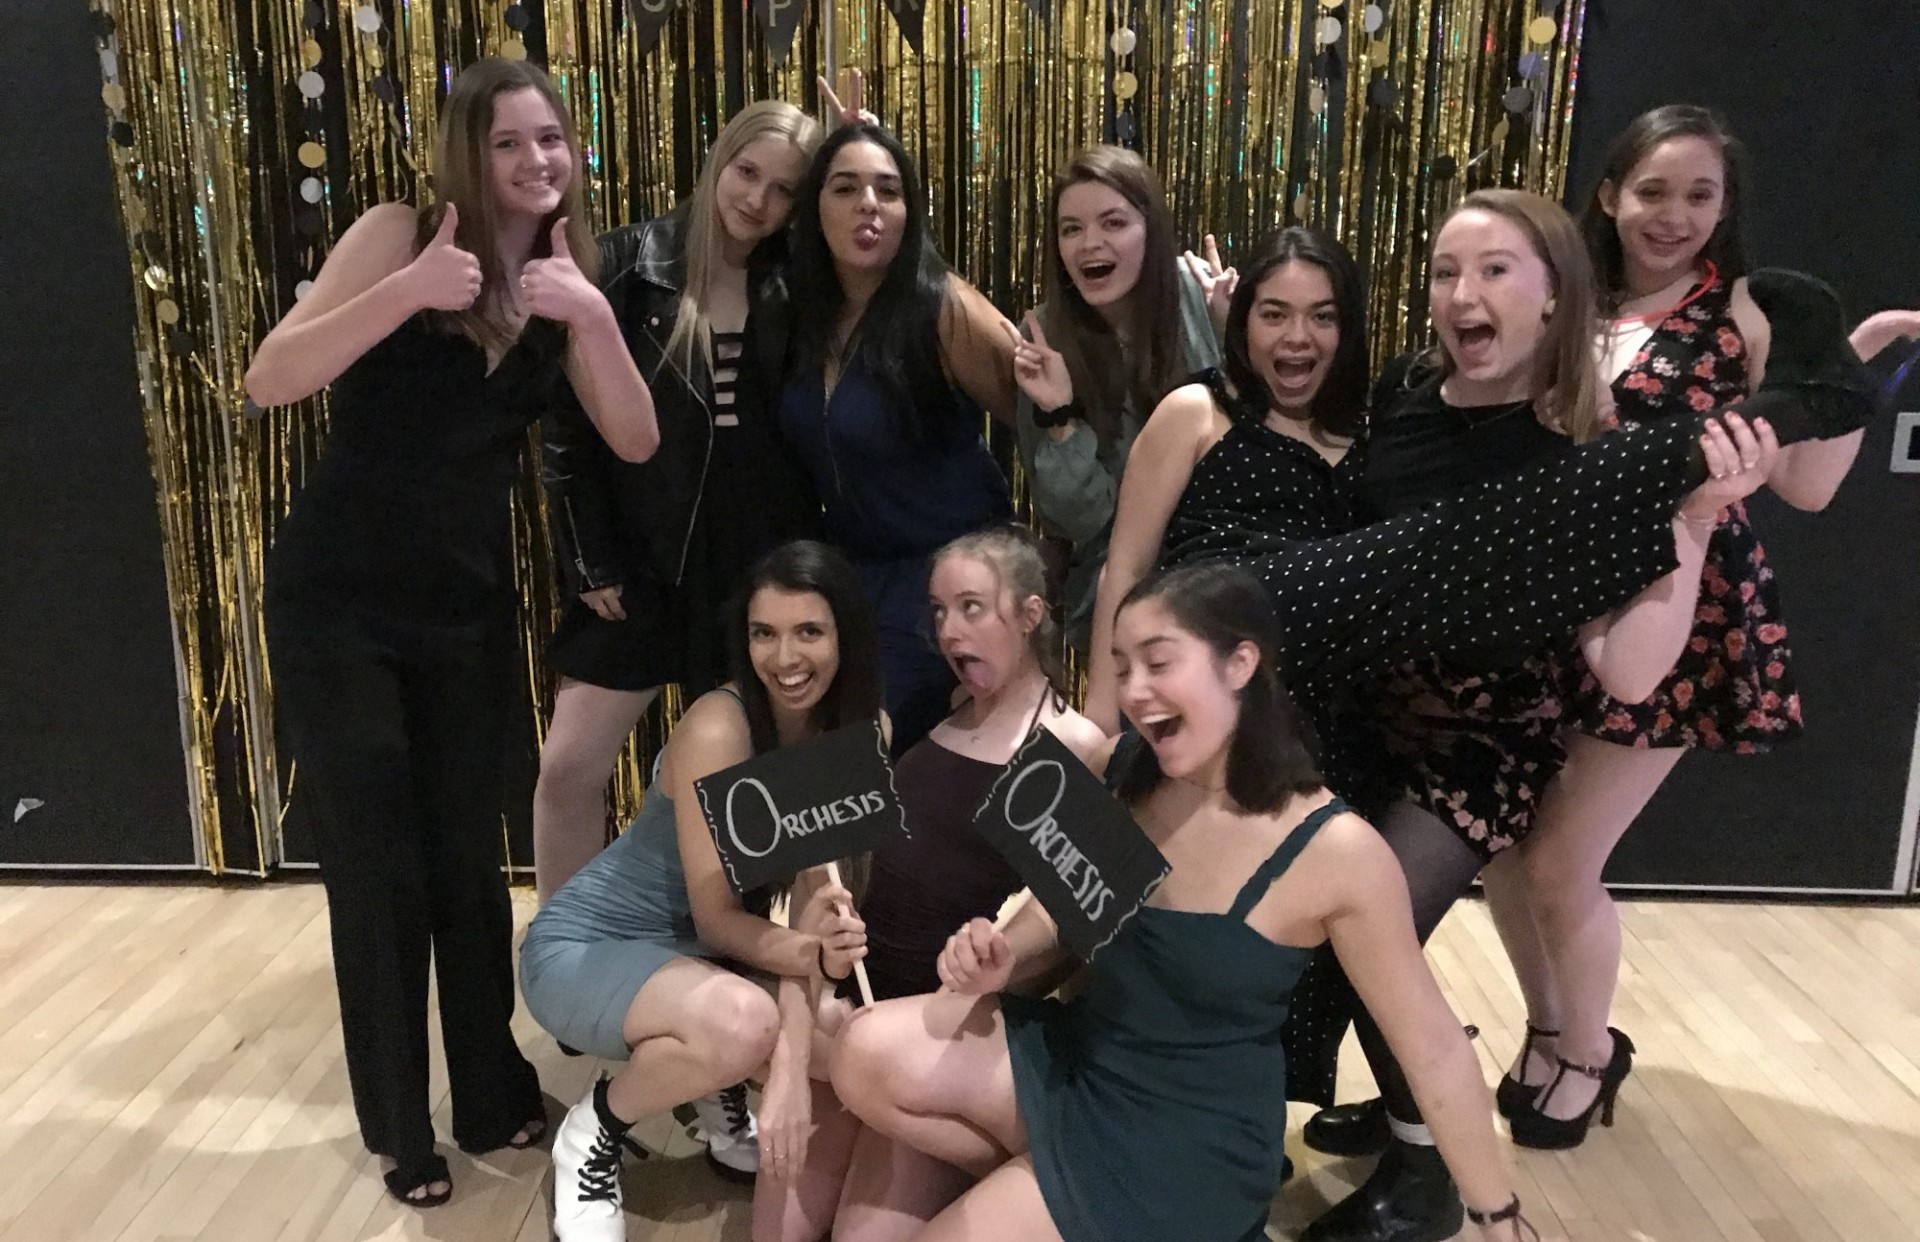 Some members of Orchesis Board 2020 at CUPAL showcase 2020